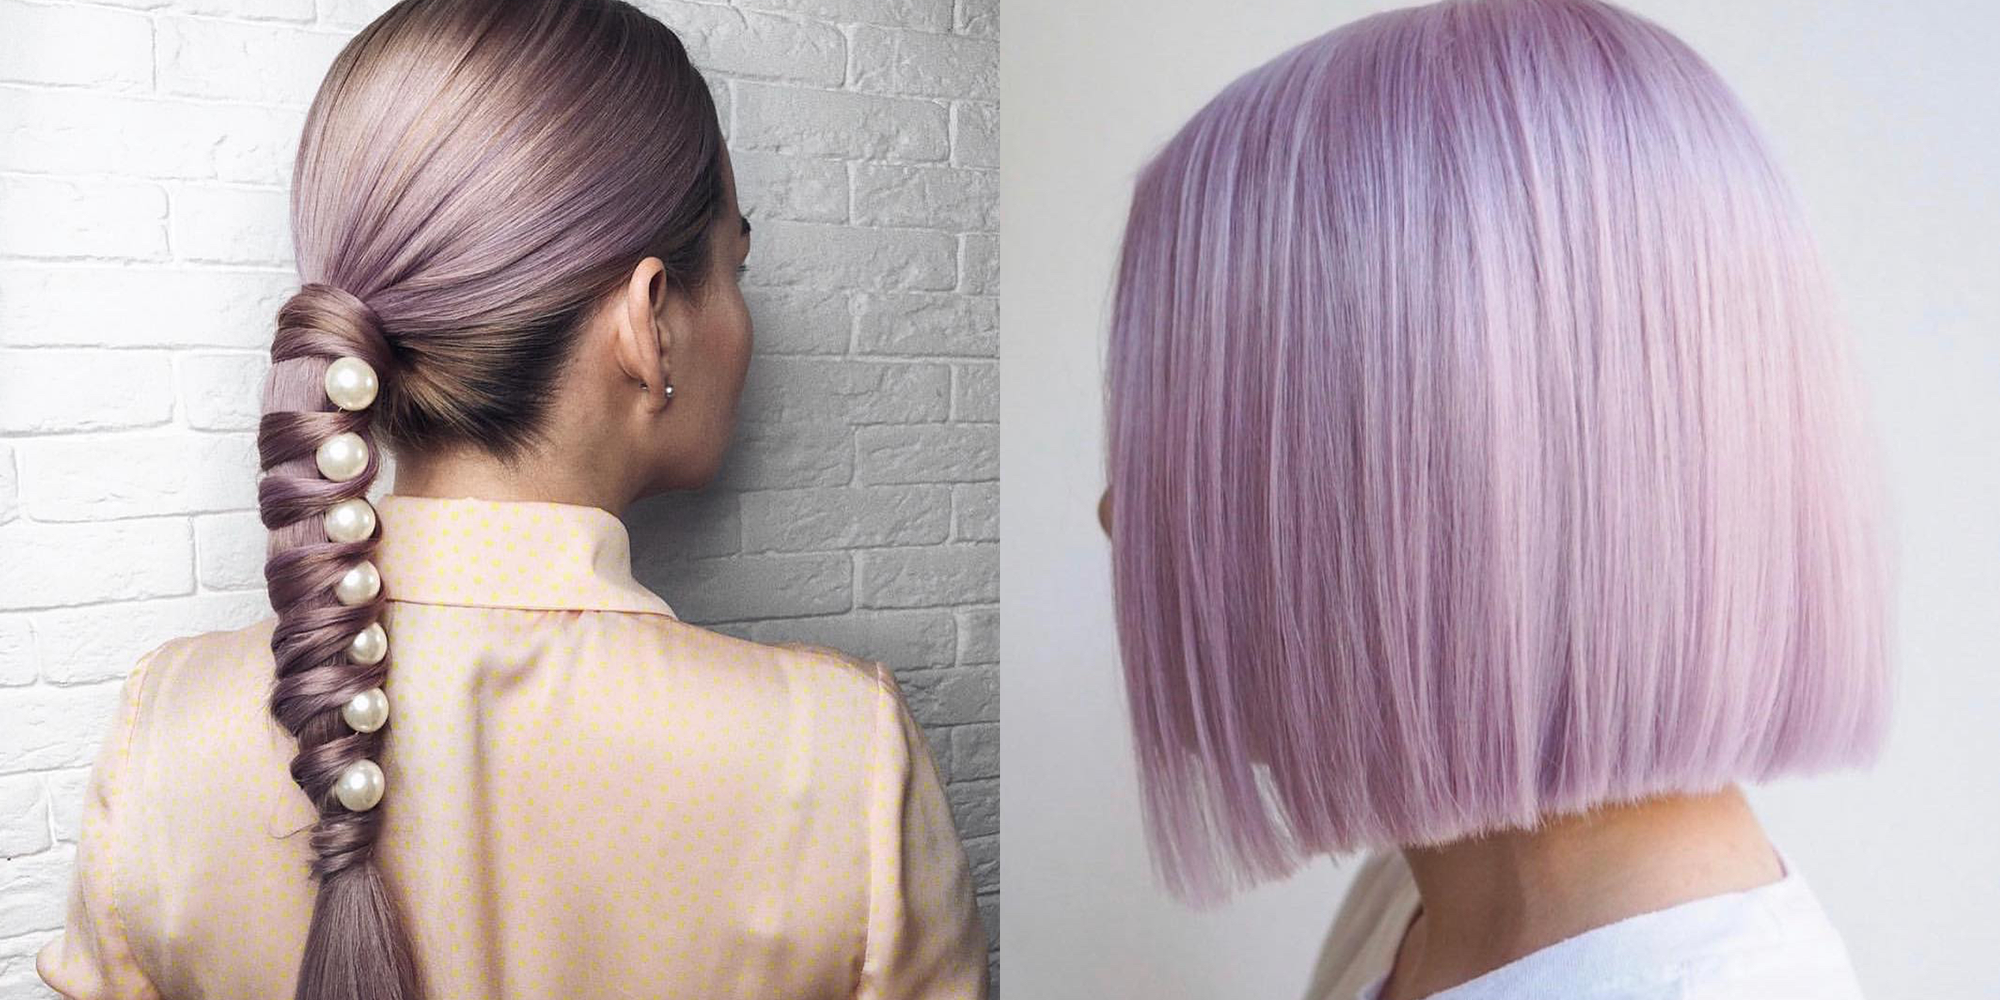 20 Lilac Hair Ideas for 2019 - How to Care for Purple Hair